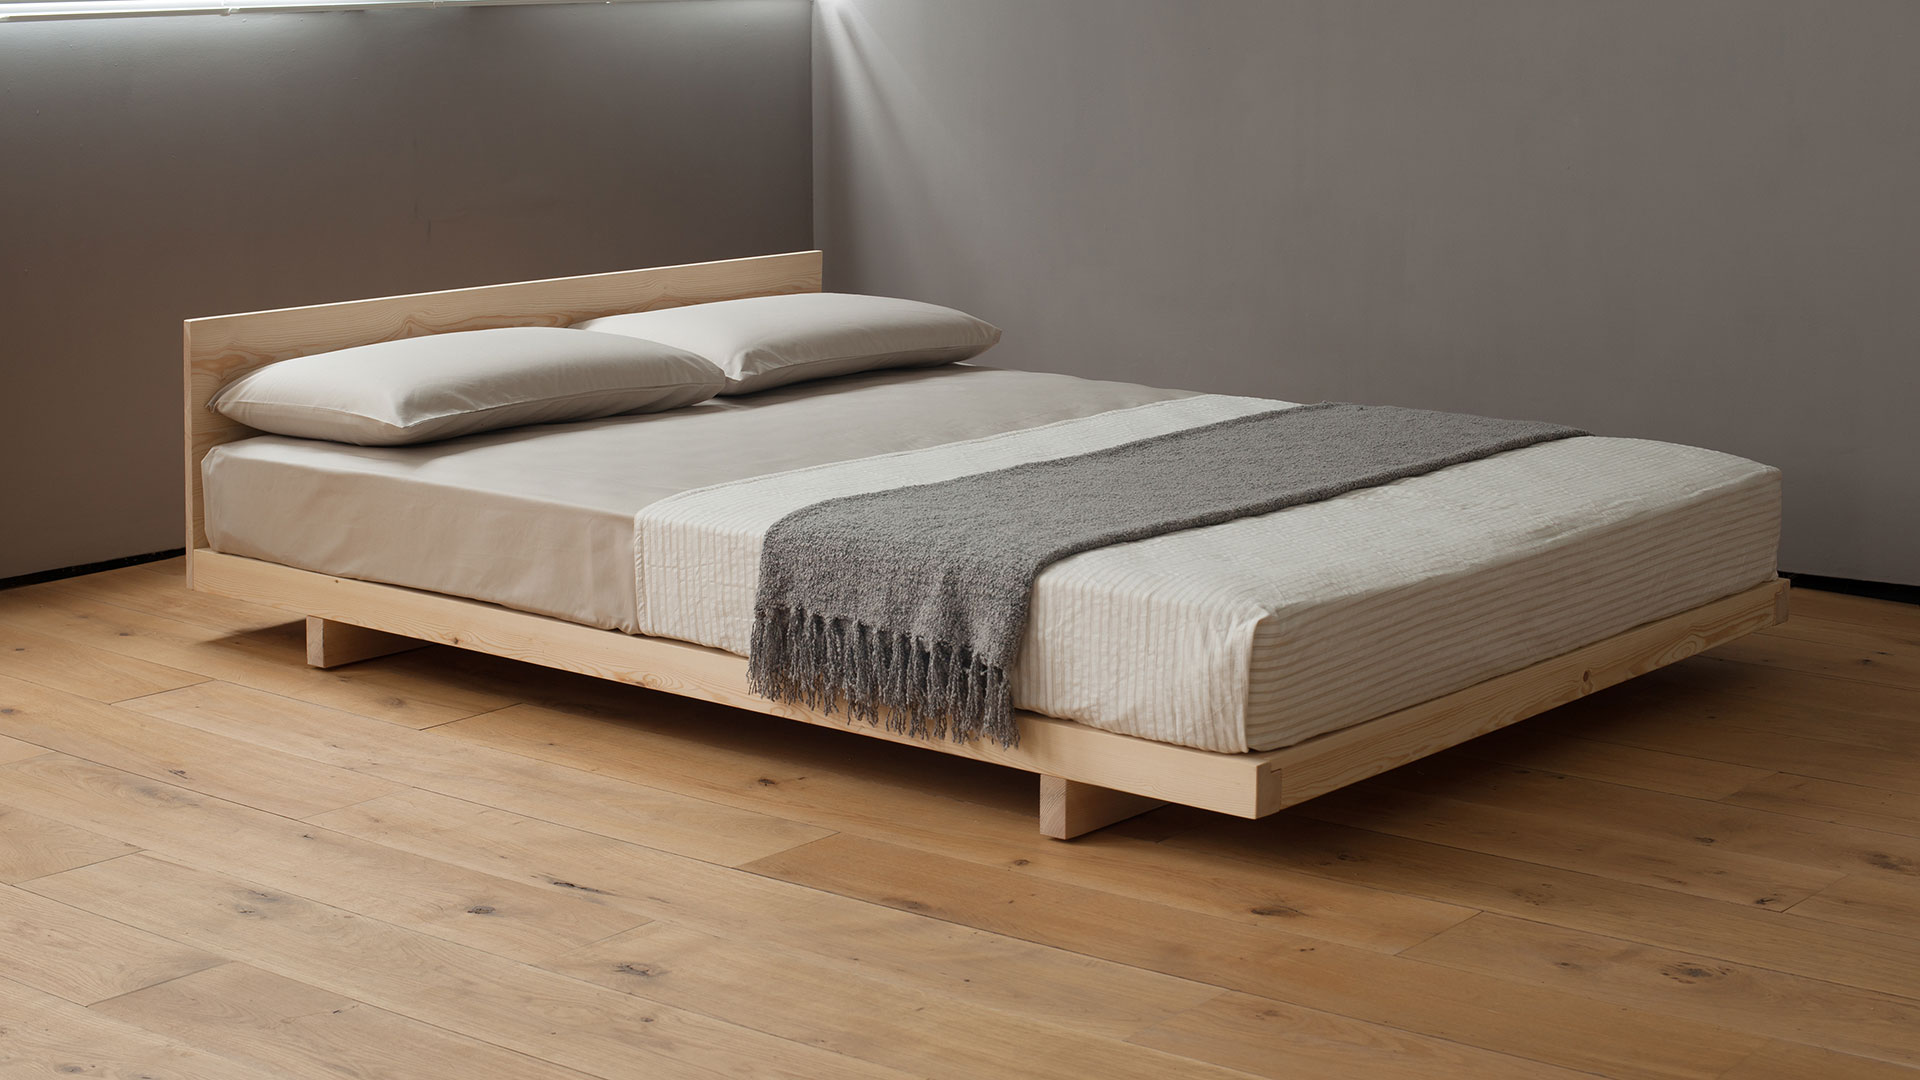 Kobe is an ultra low wooden bed or futon base which comes with or without a headboard